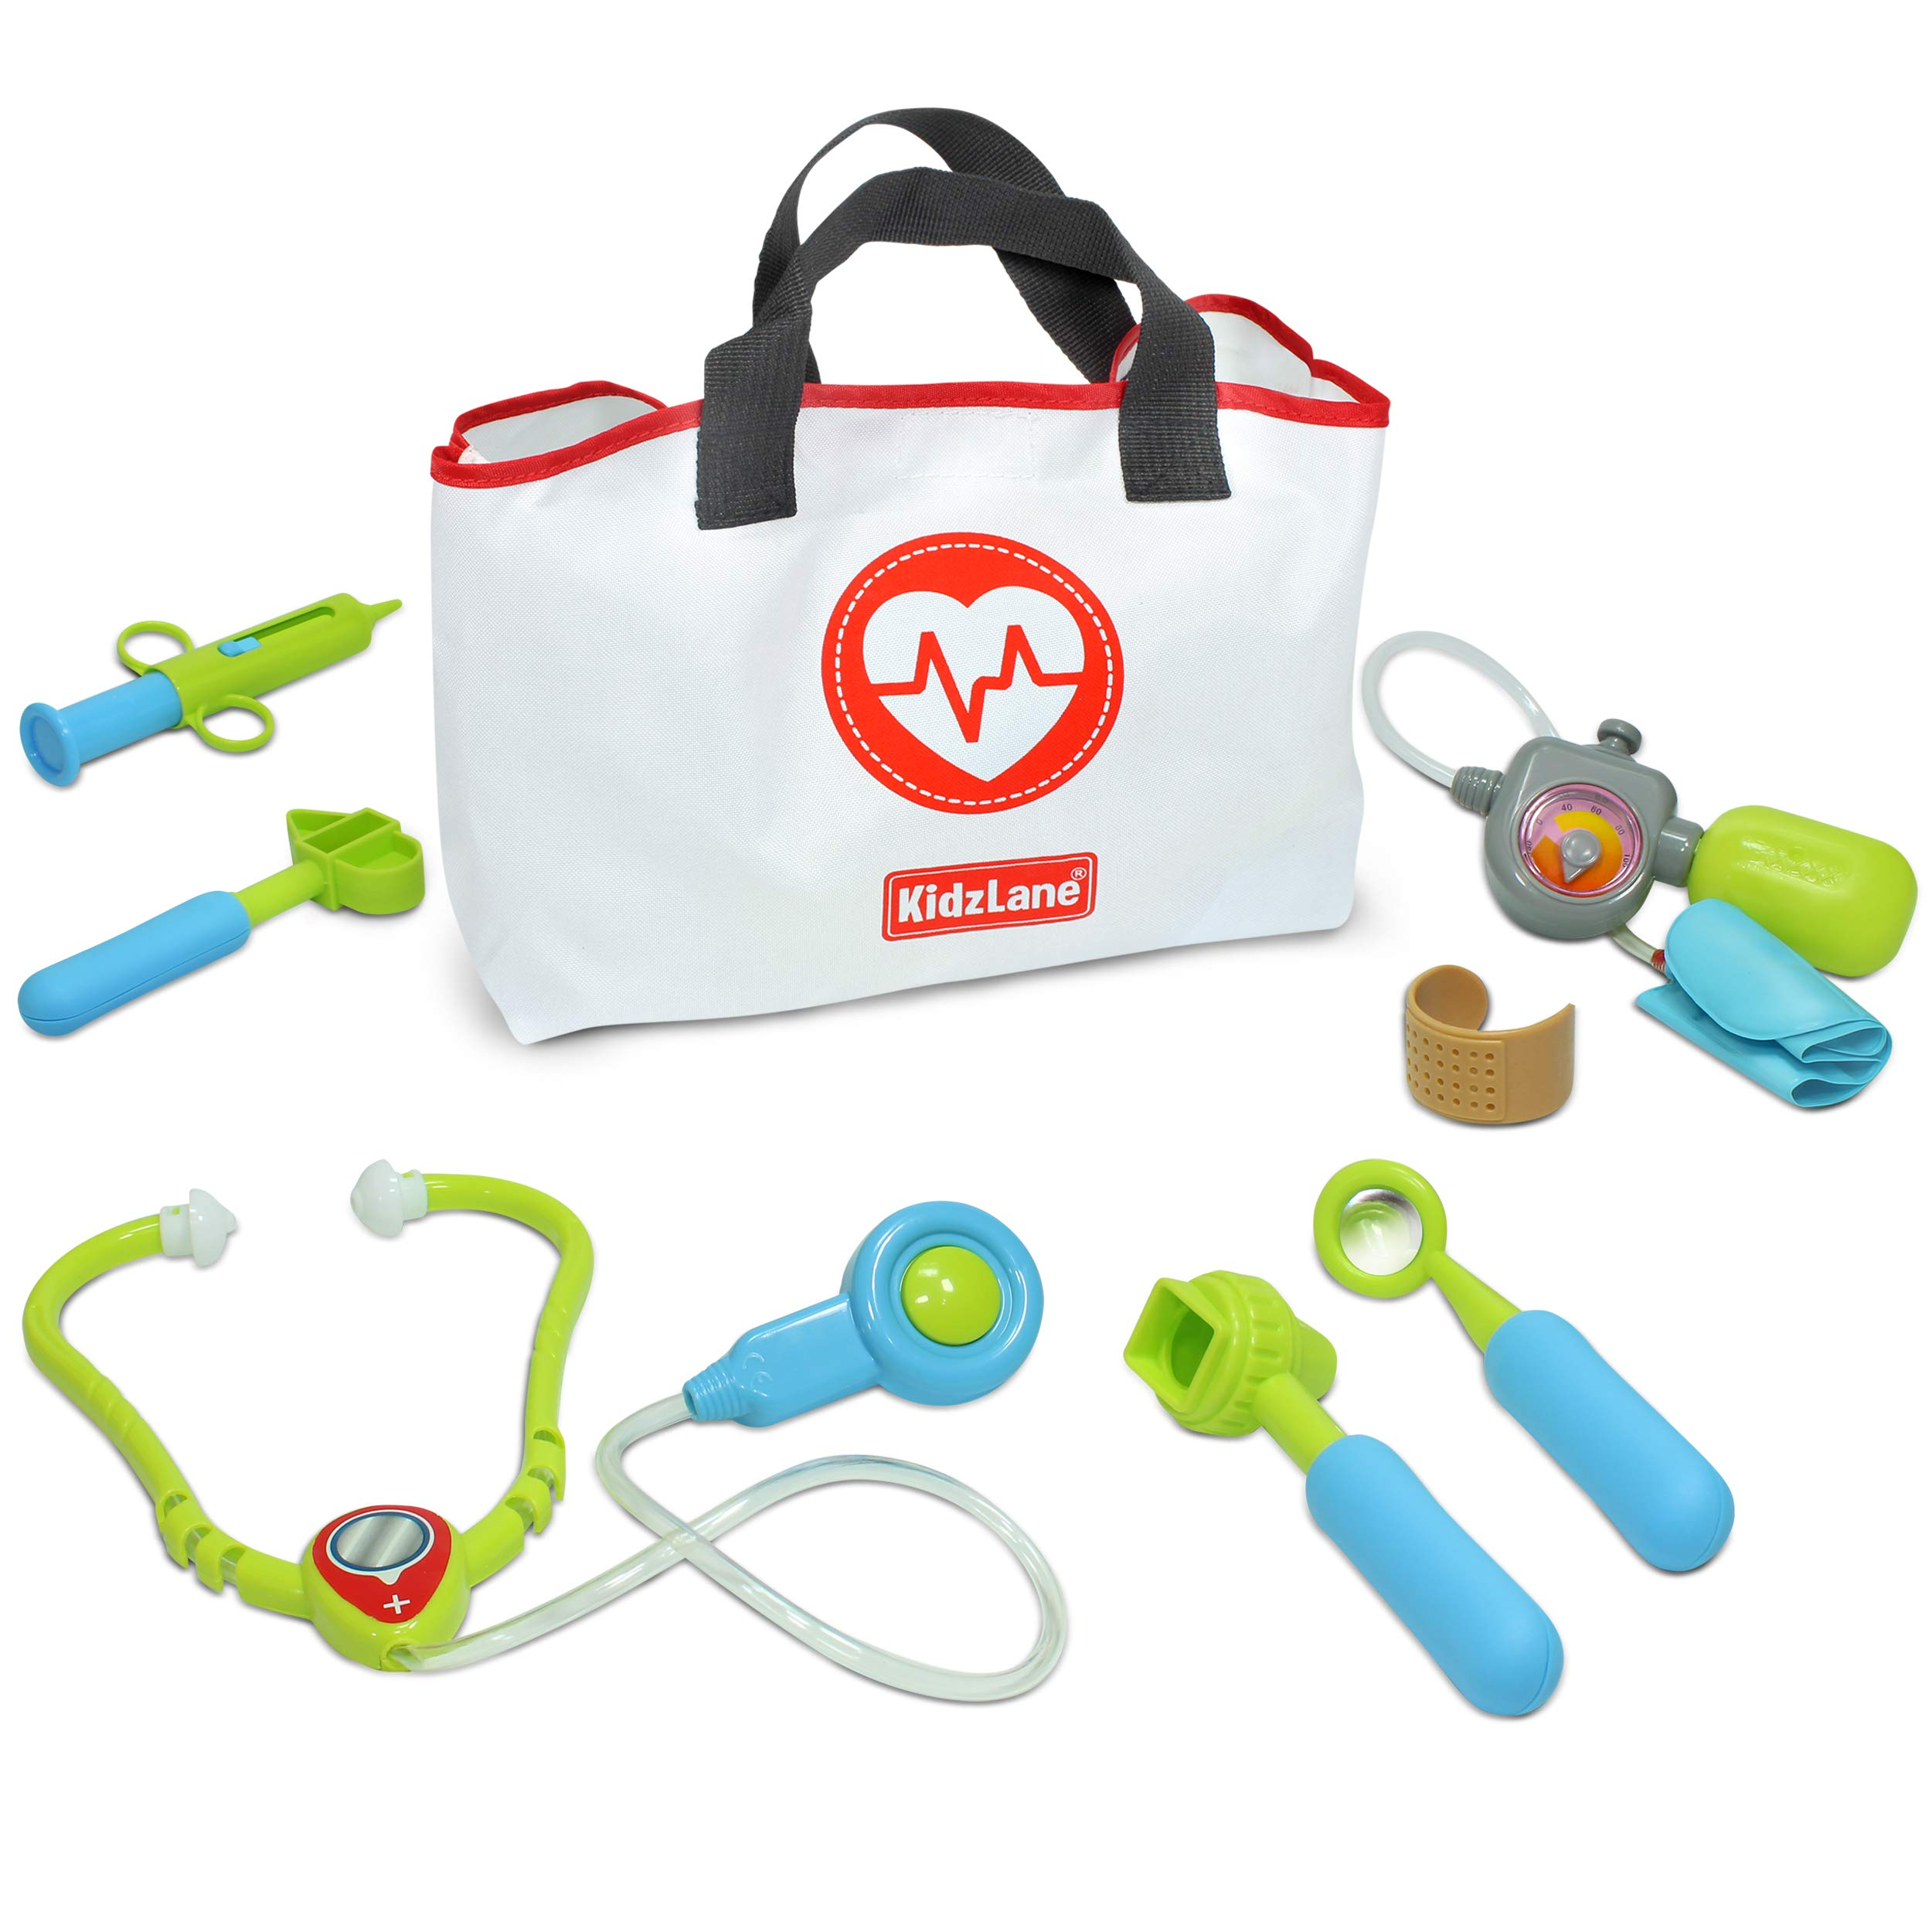 Kidzlane Play Doctor Kit for Toddlers and Kids - Kids Doctor Playset - 7 Piece Dr Set with Medical Storage Bag and Electronic Stethoscope for Kids Ages 3+